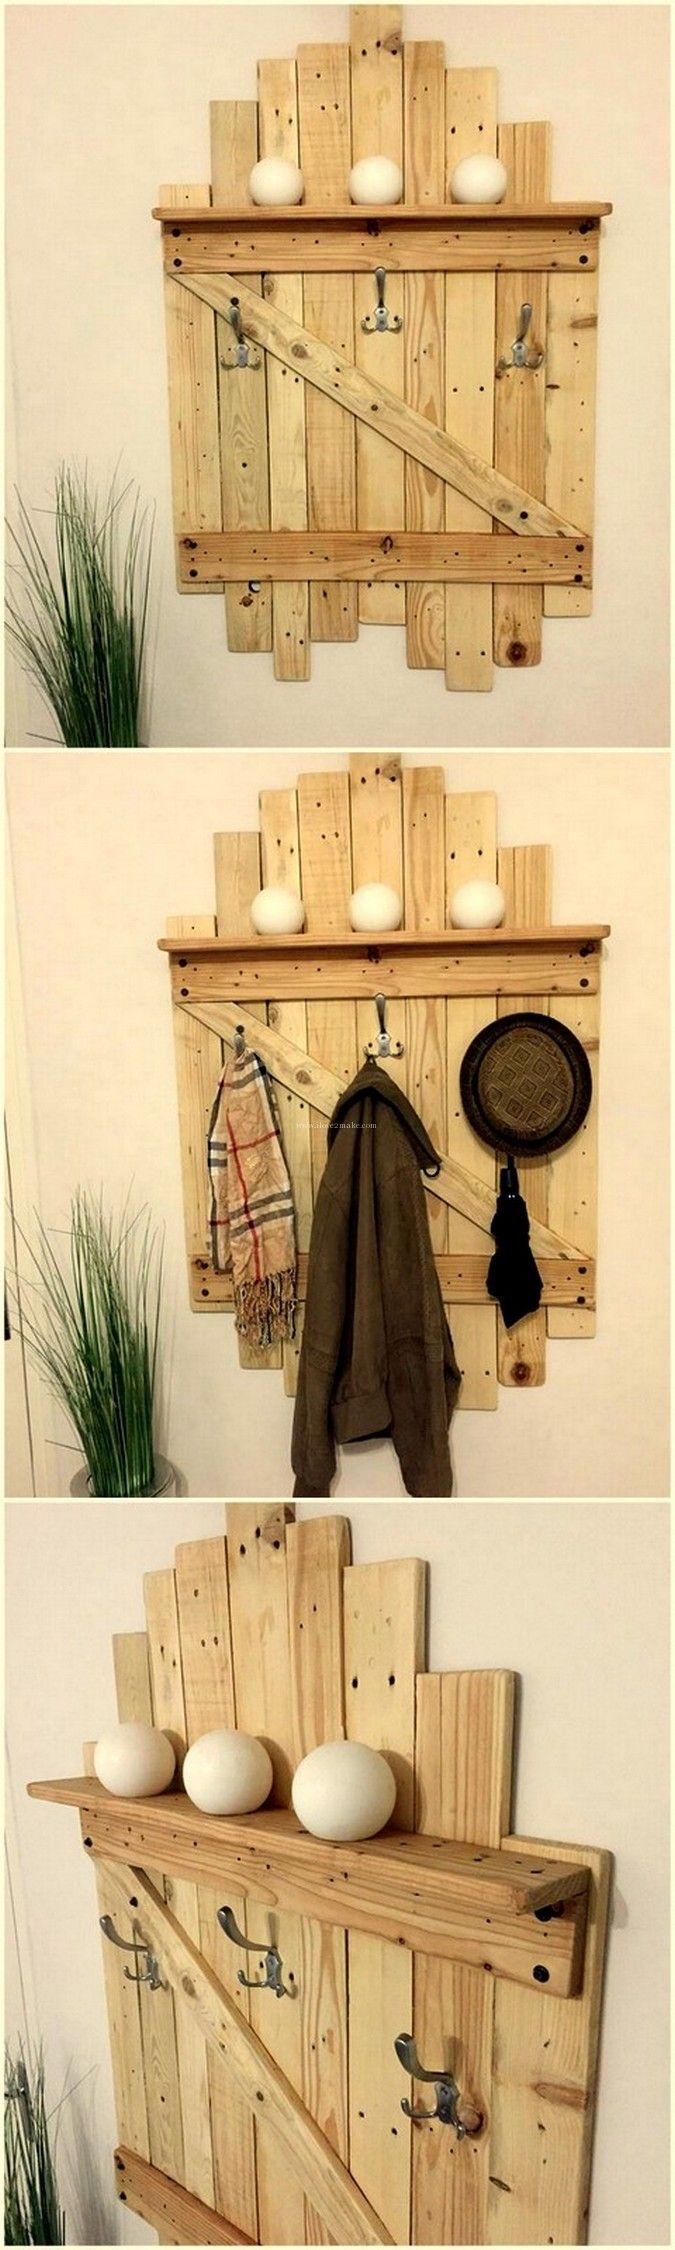 amazing pallet wood wall shelf | Using Pallets For Woodworking ...